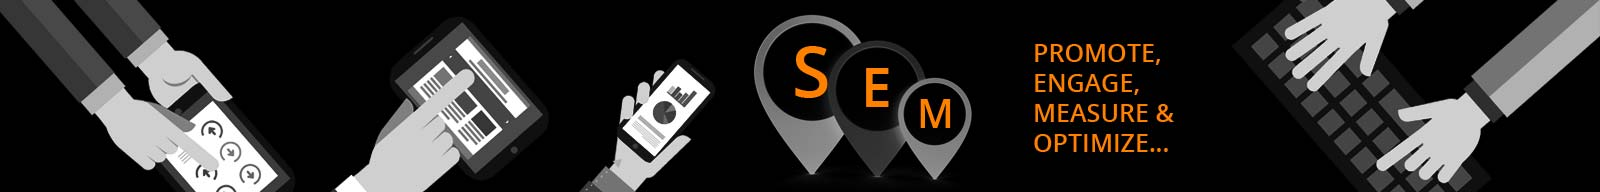 Search Engine Marketing Services / SEM (PPC) : iMz Media Solutions